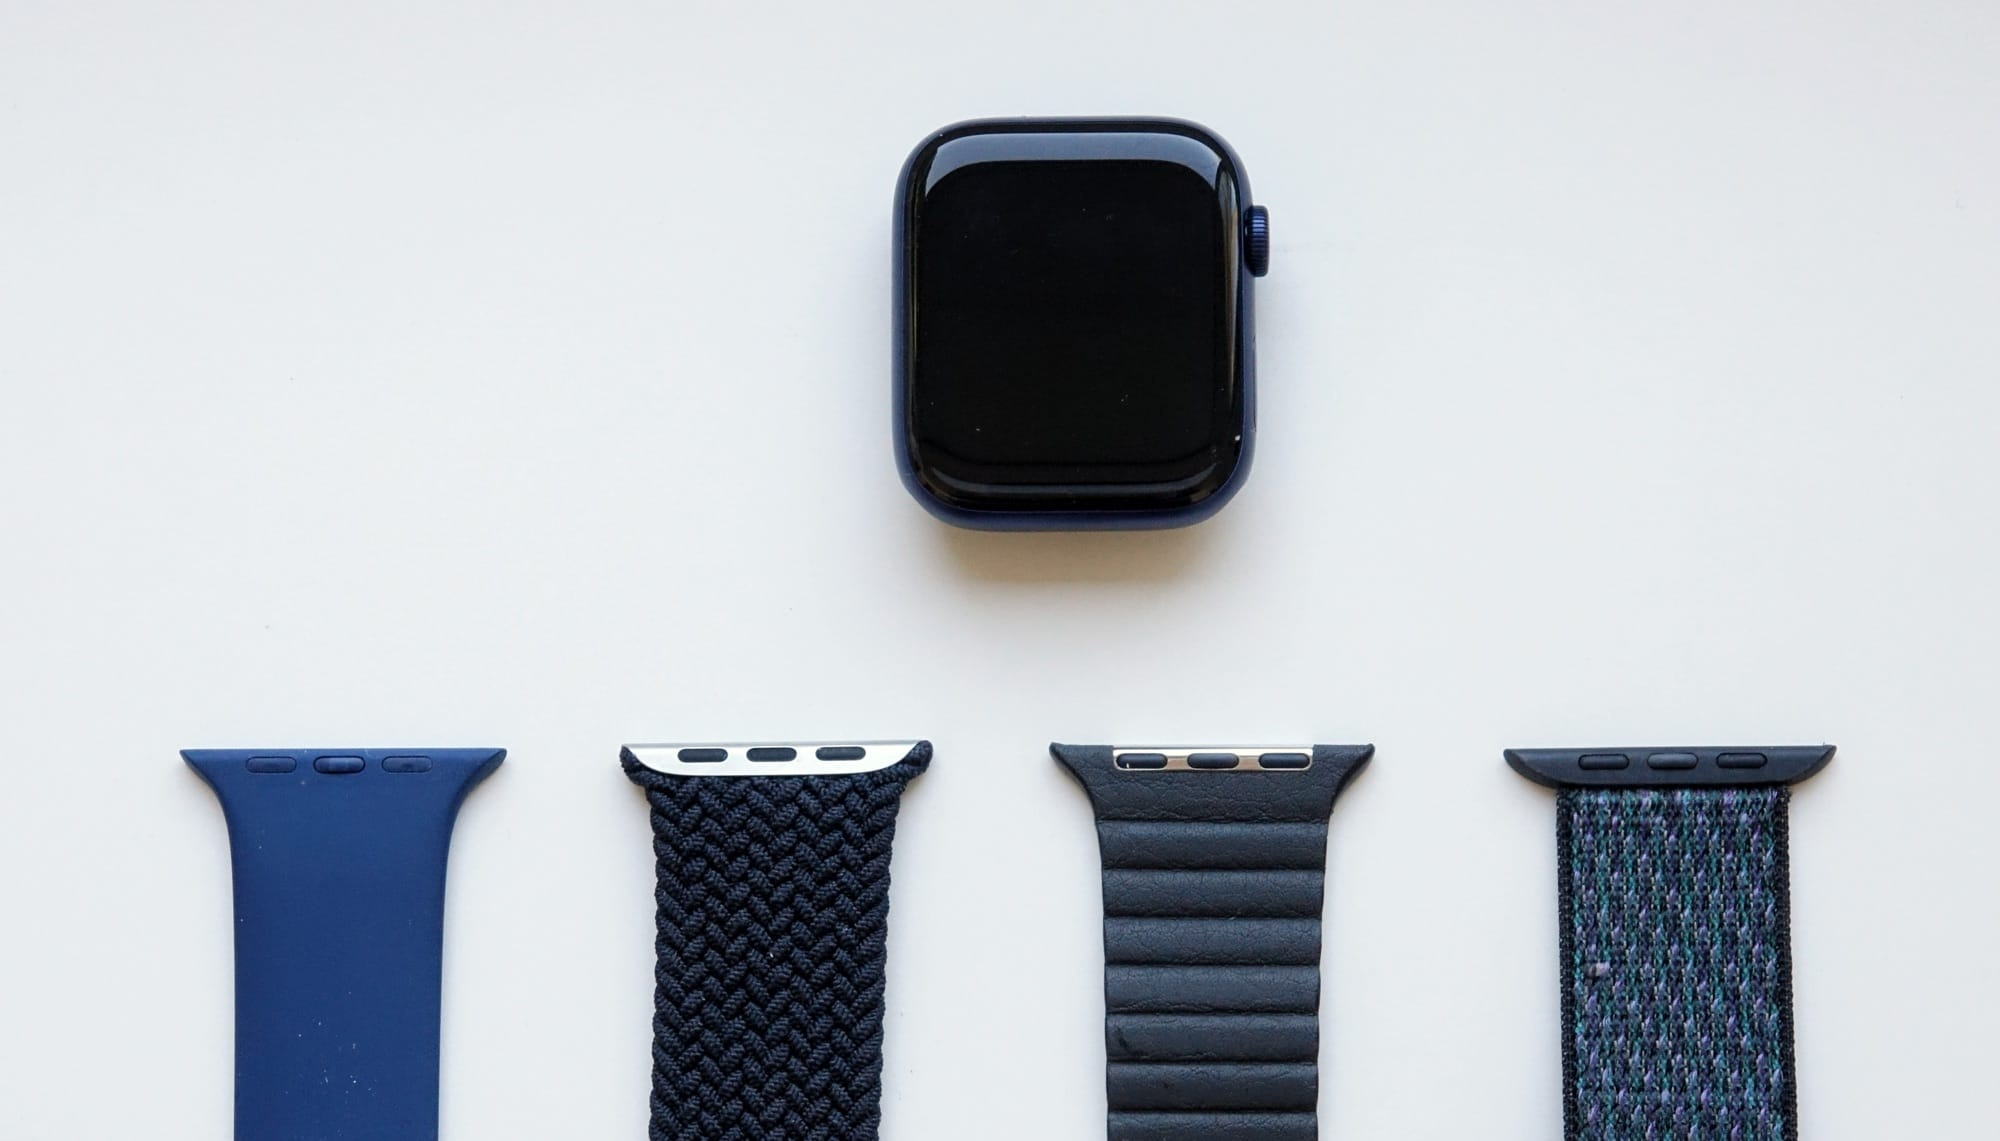 The blue Series 6 Apple Watch is almost grey or black, but armed with the right band, and it can look blue.